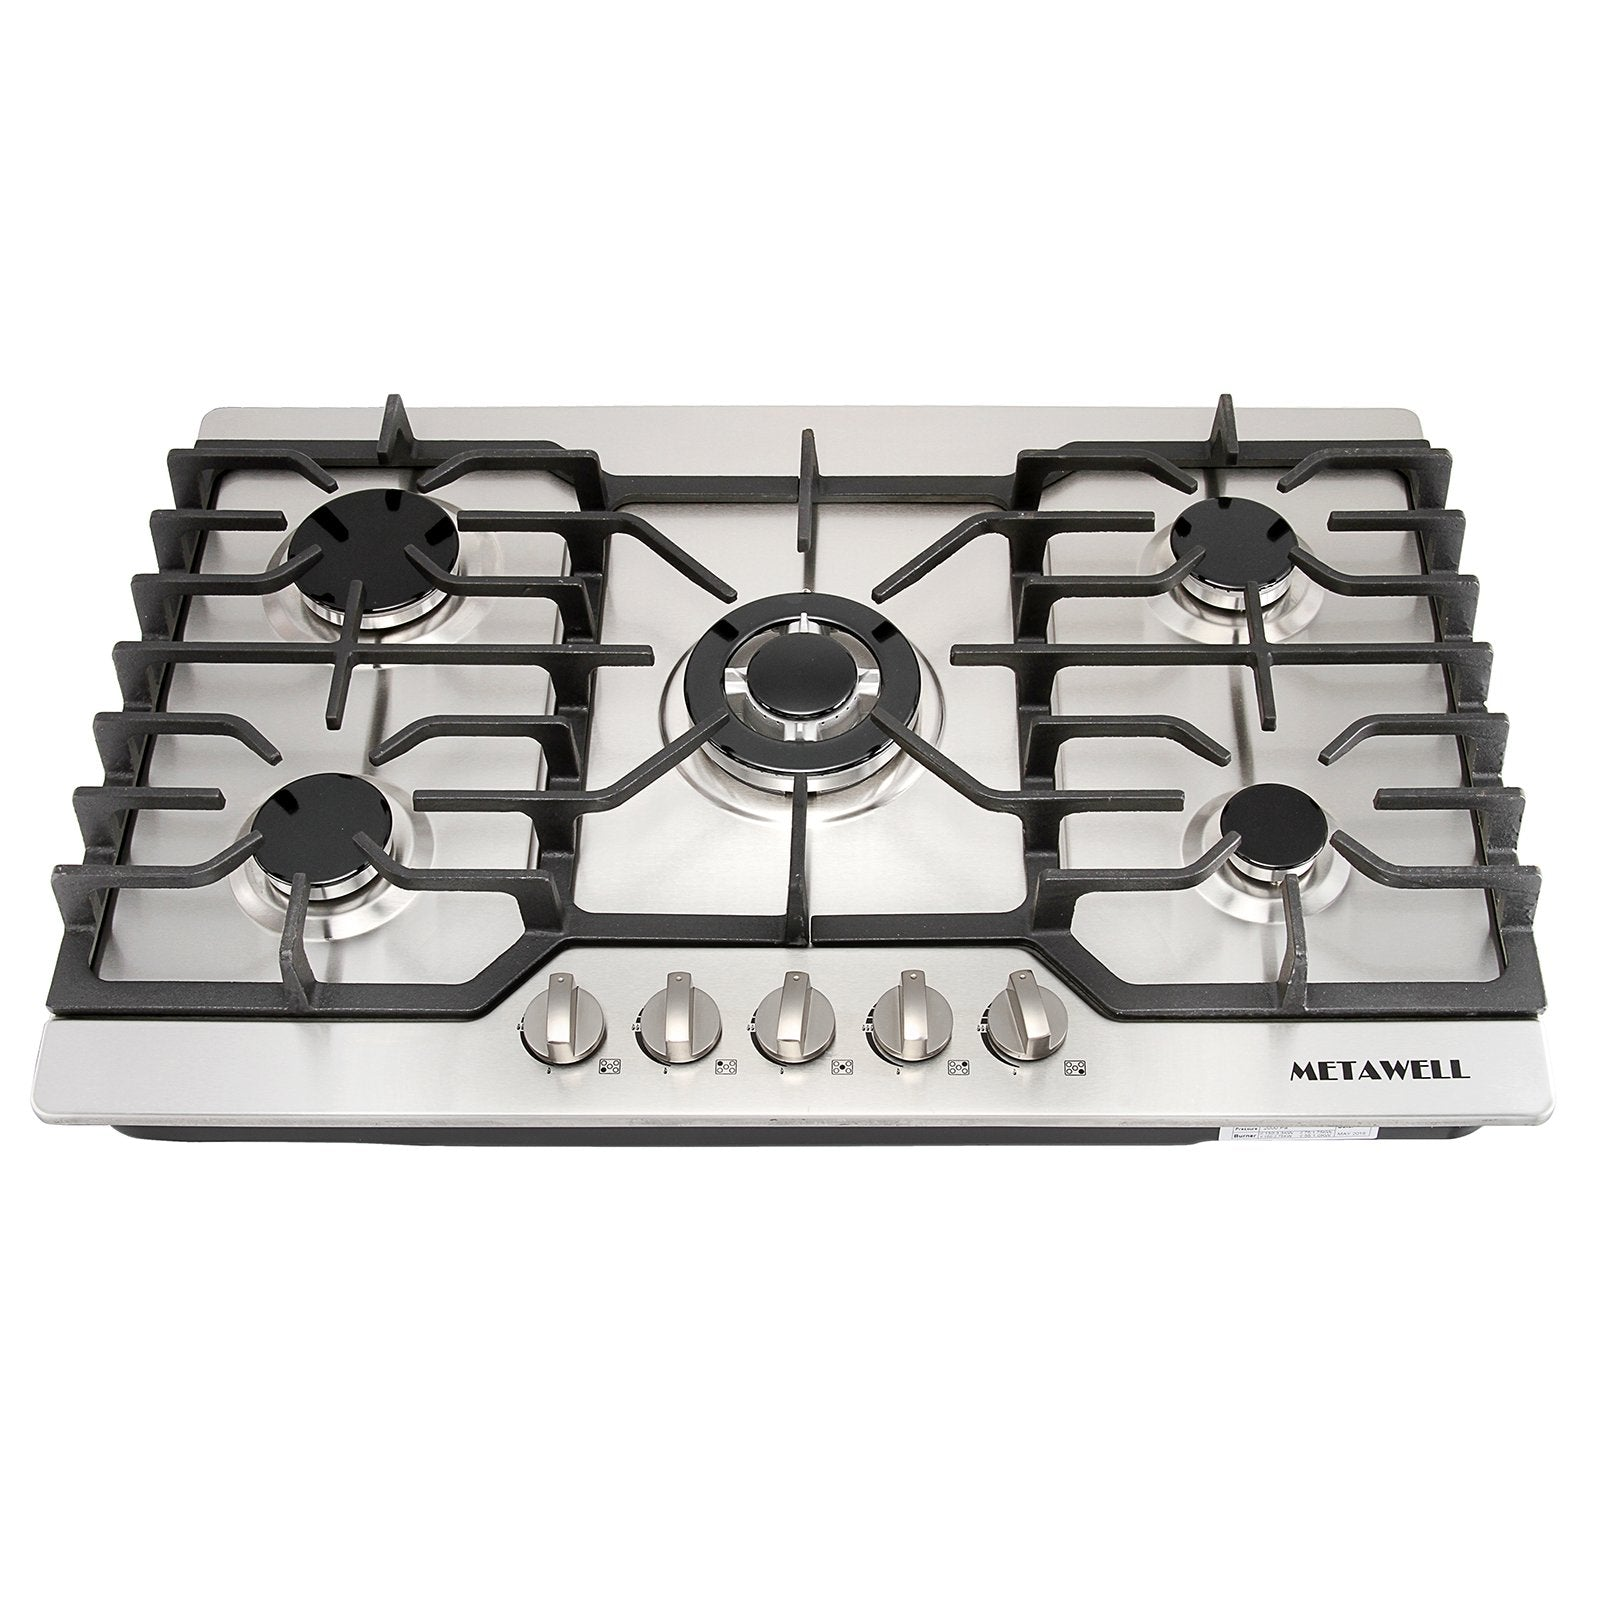 "METAWELL 30"" Stainless Steel Gold Burner Built-in 5 Stoves Natural Gas Cooktops Cooker"